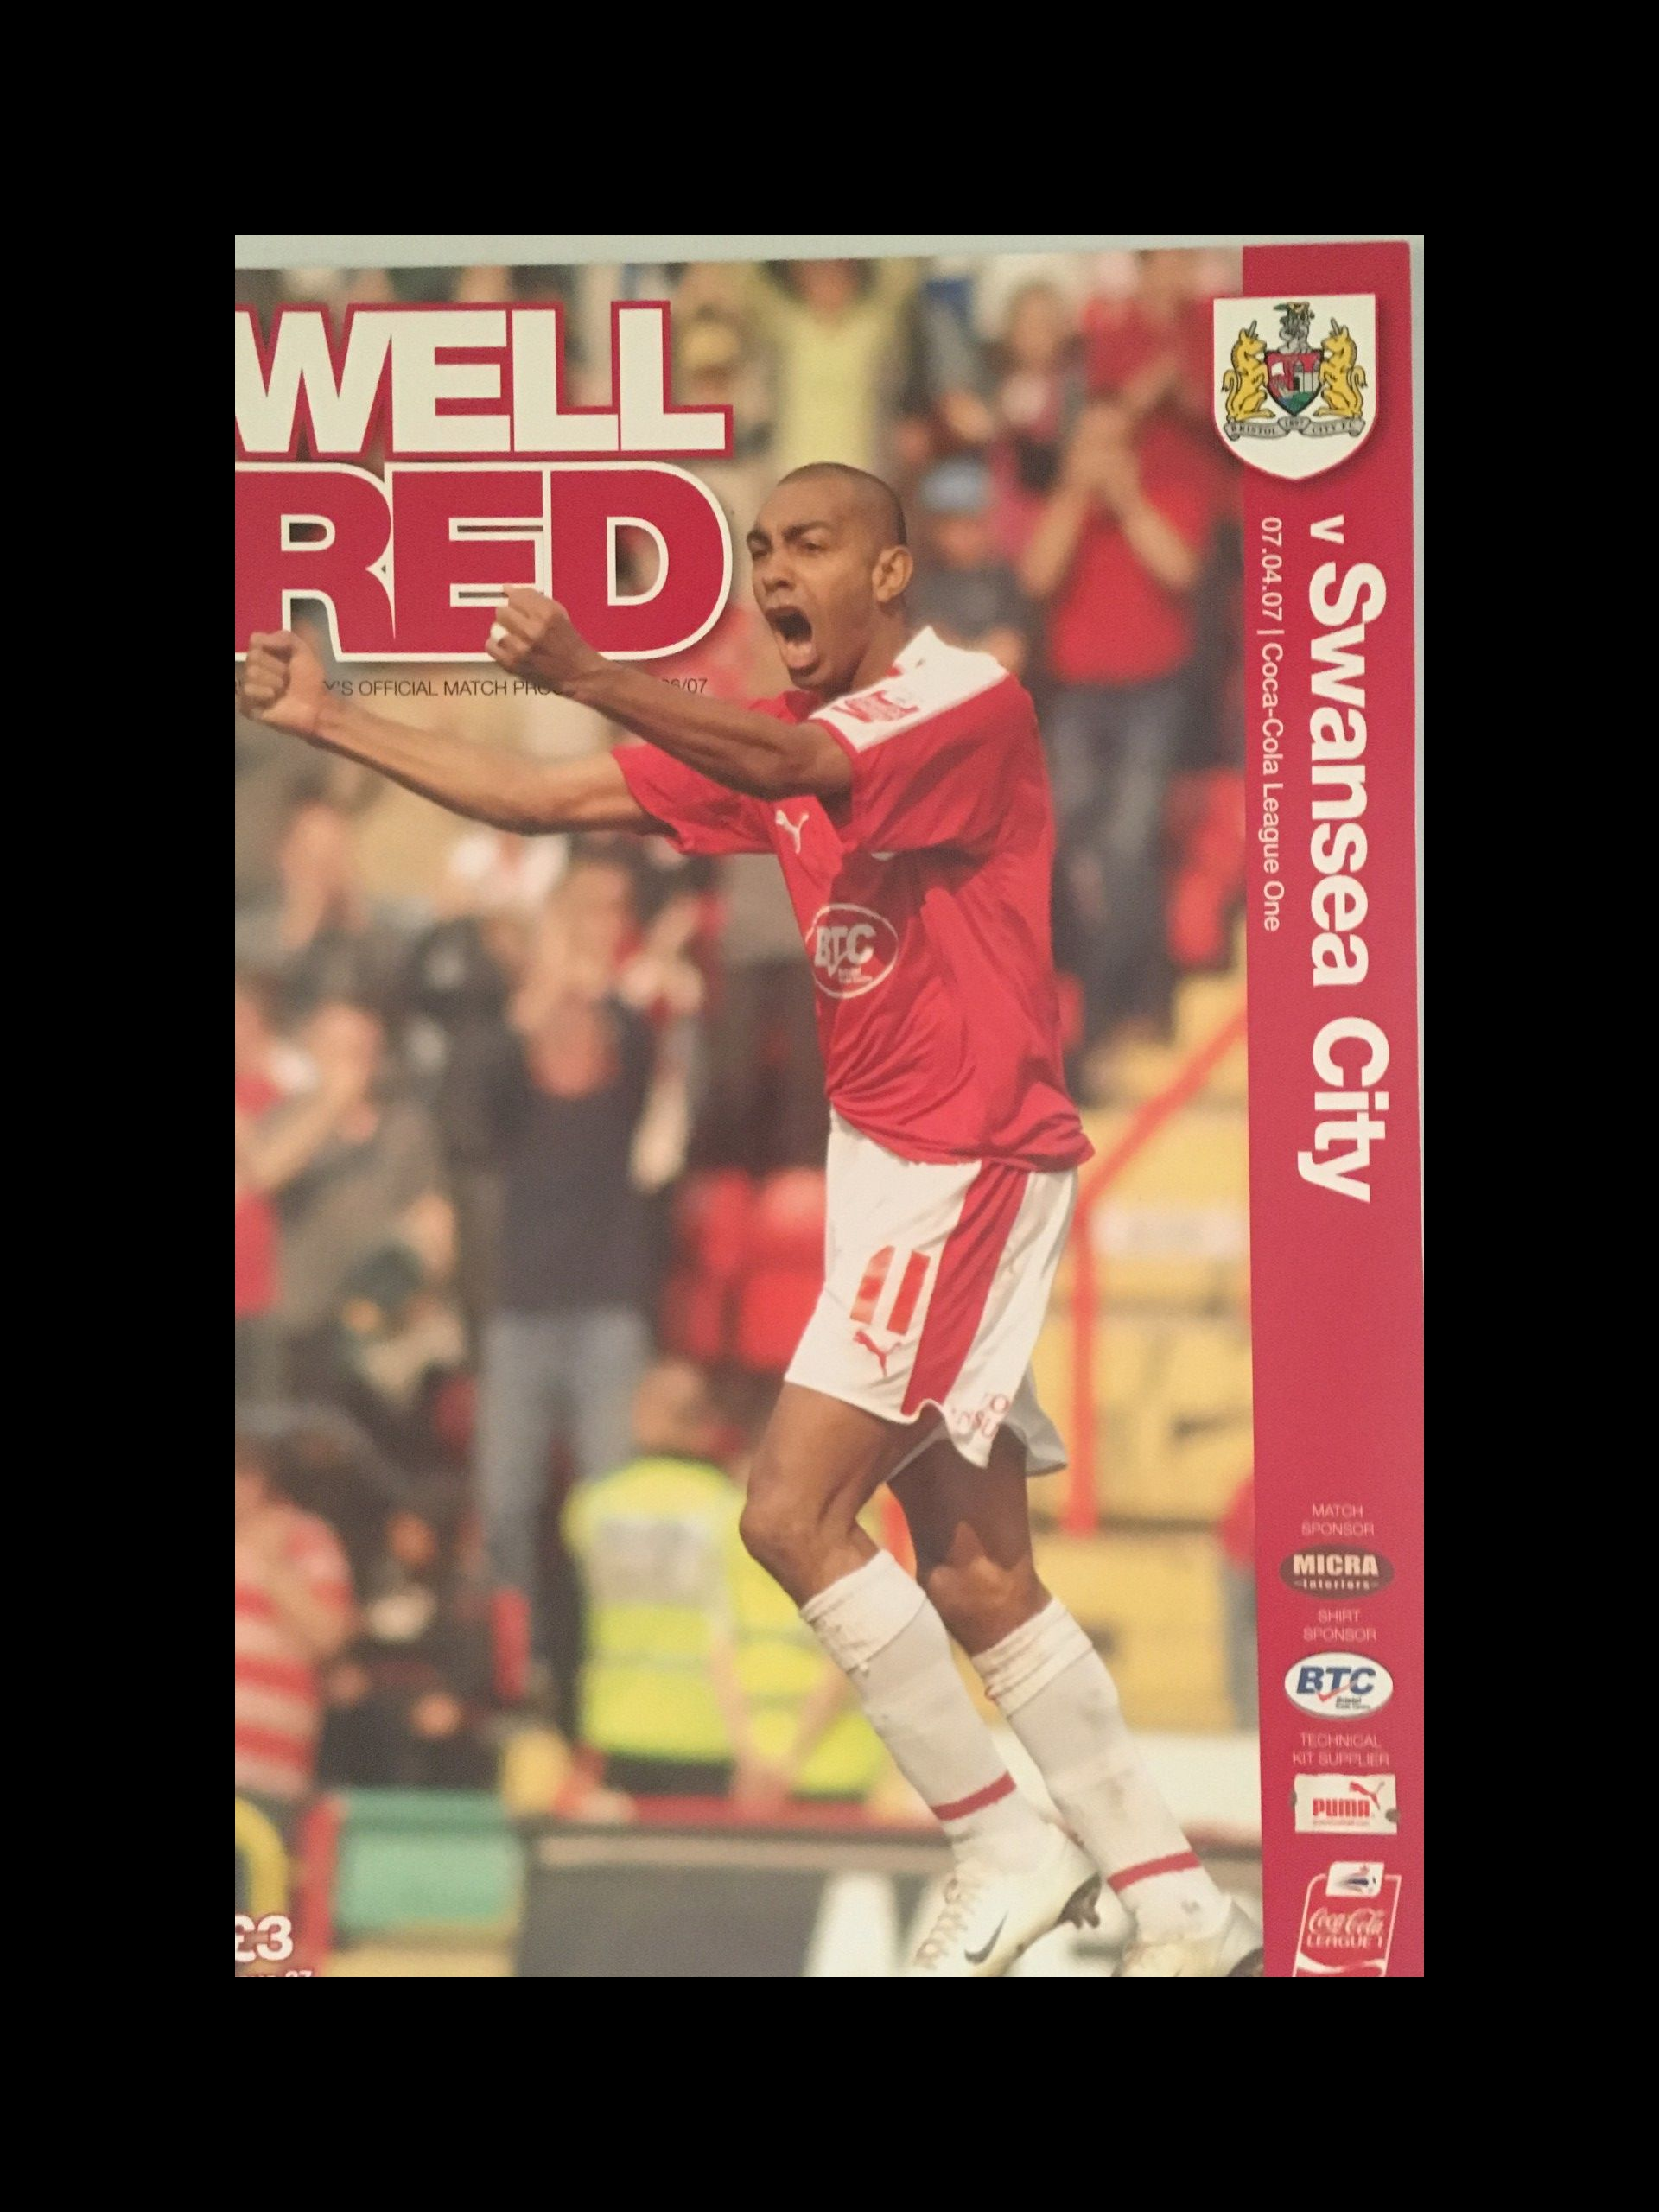 Bristol City v Swansea City 07-04-2007 Programme